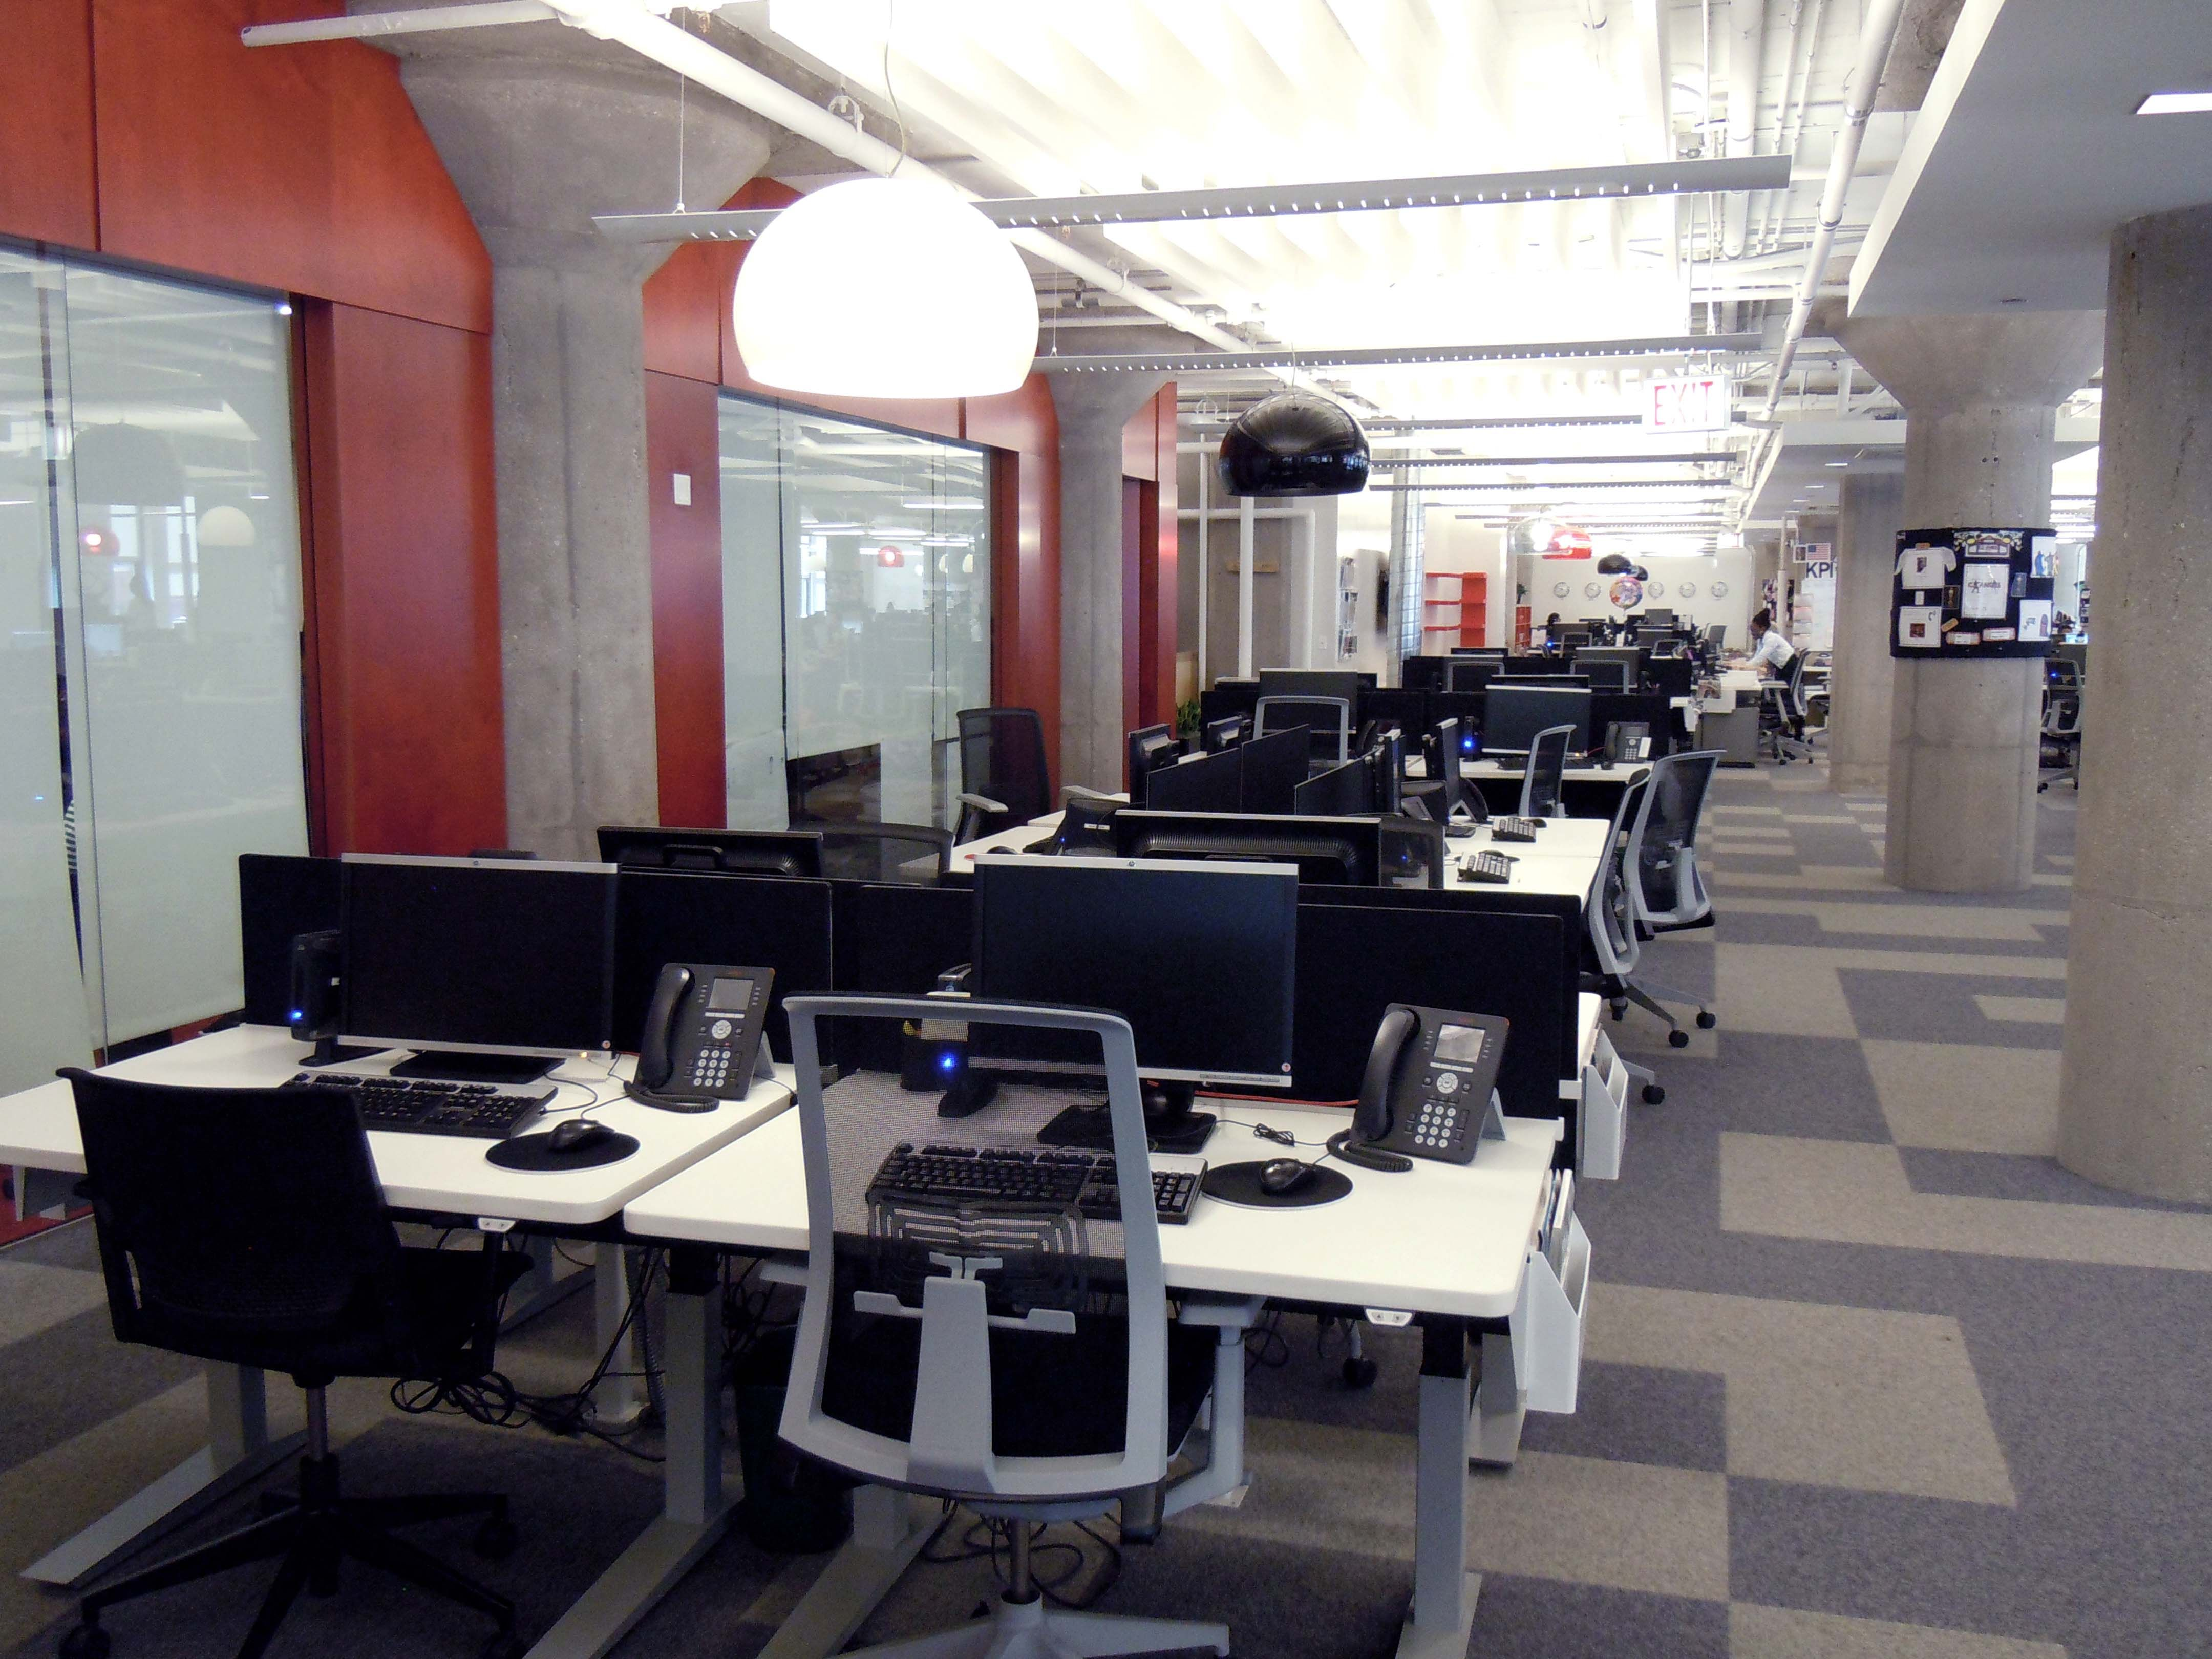 Open plan office with stand up desks.